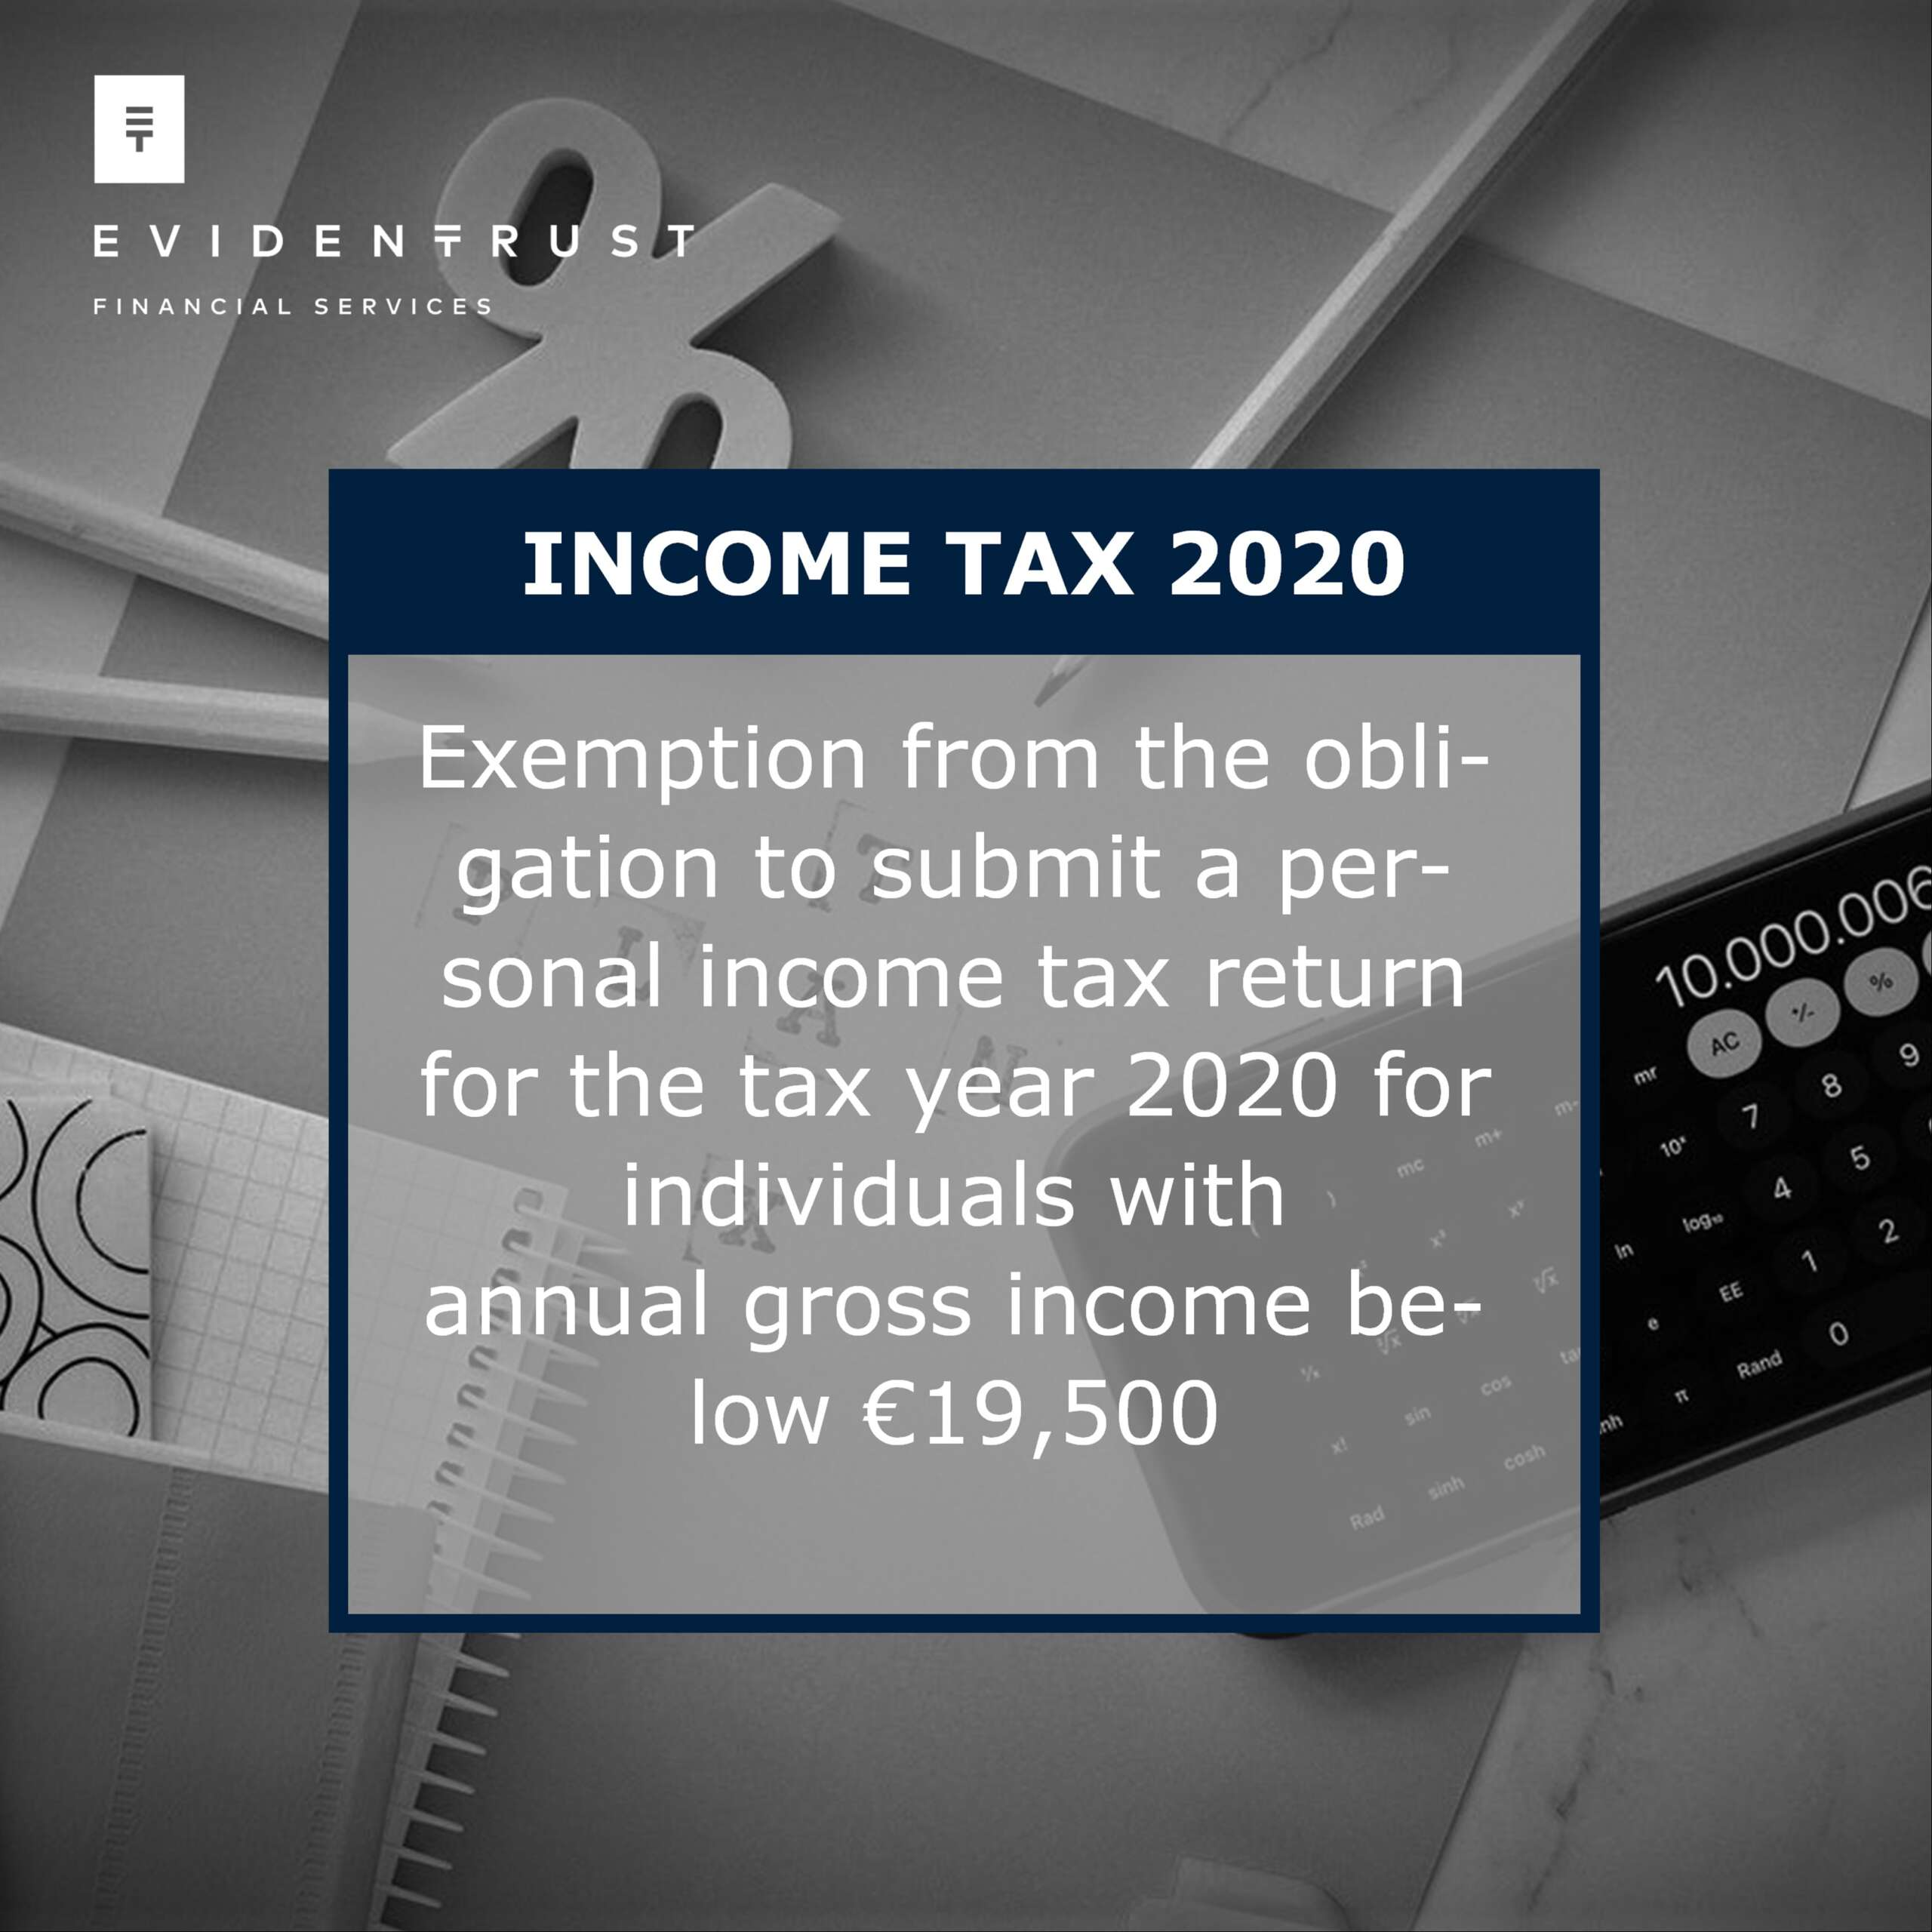 2020 Income Tax form exception for income below €19,500